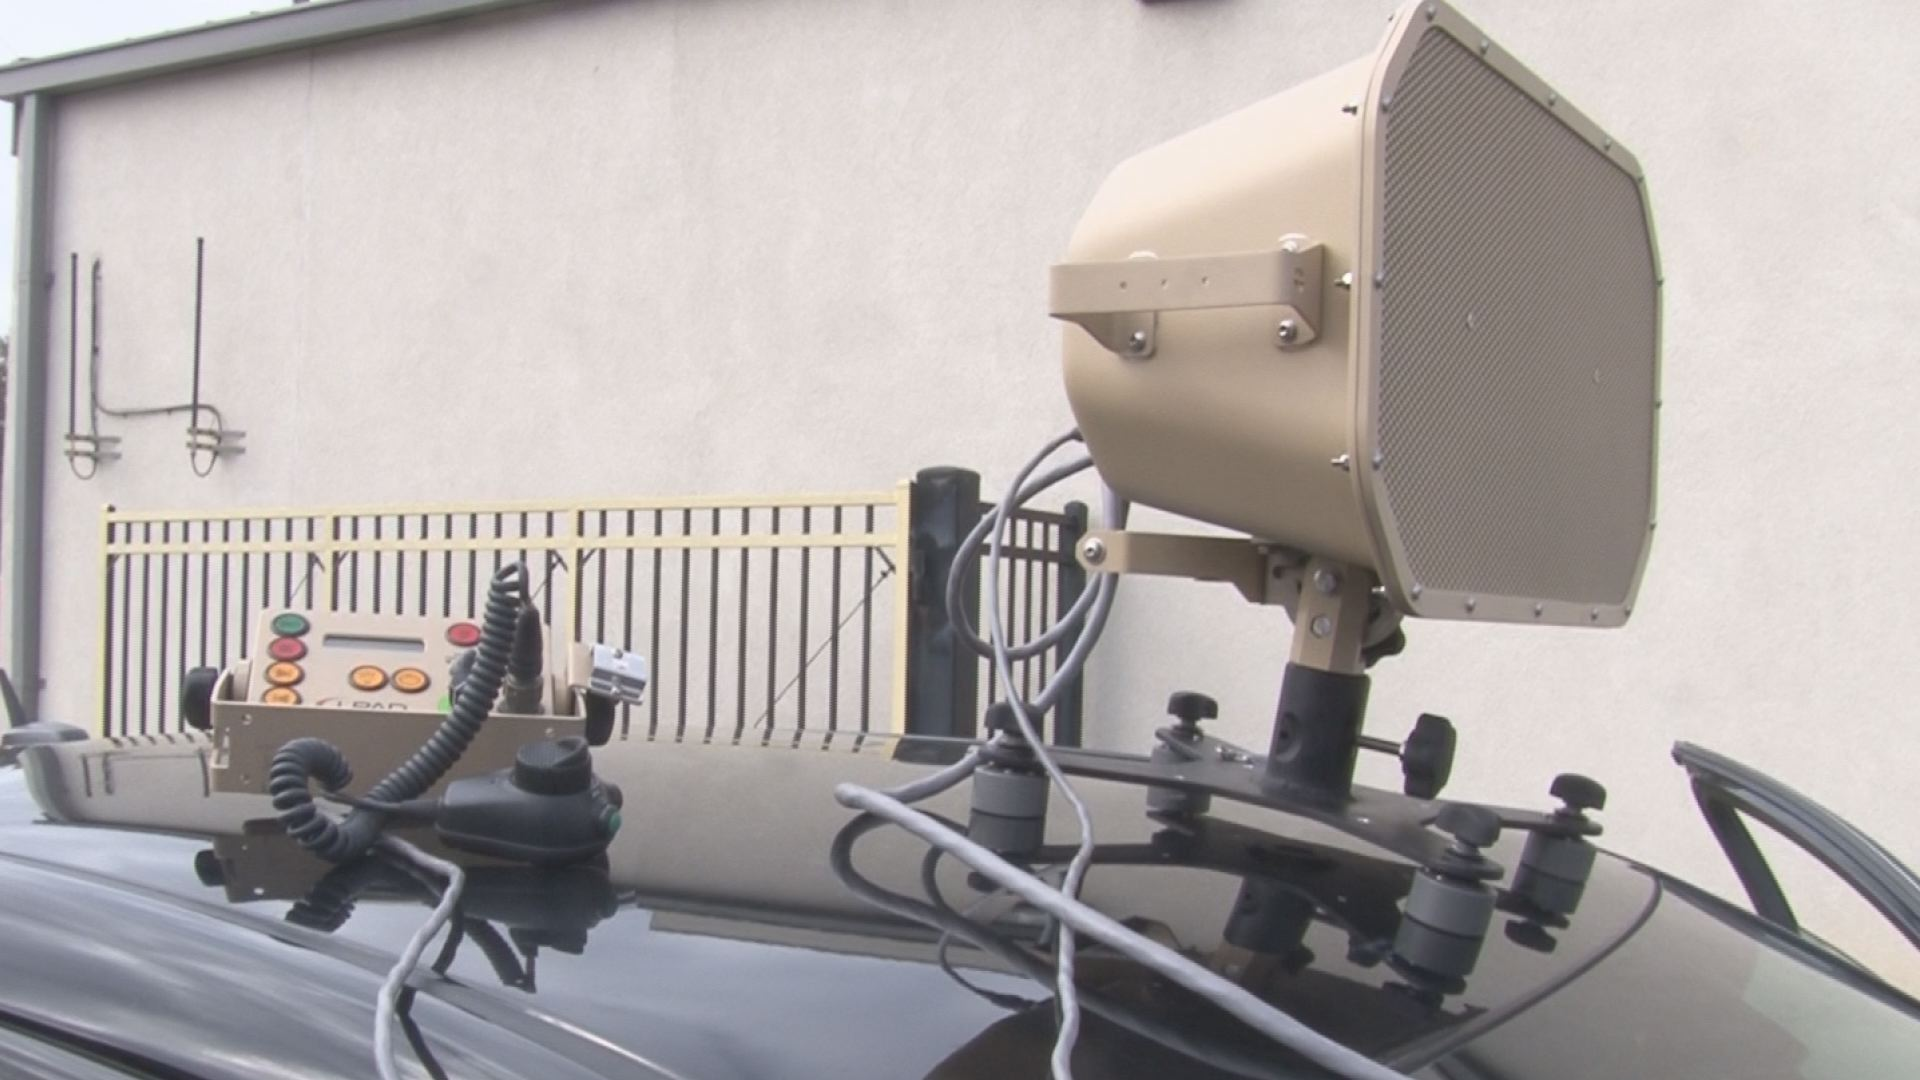 Phoenix police vow not to 'weaponize' powerful $95K loudspeaker system